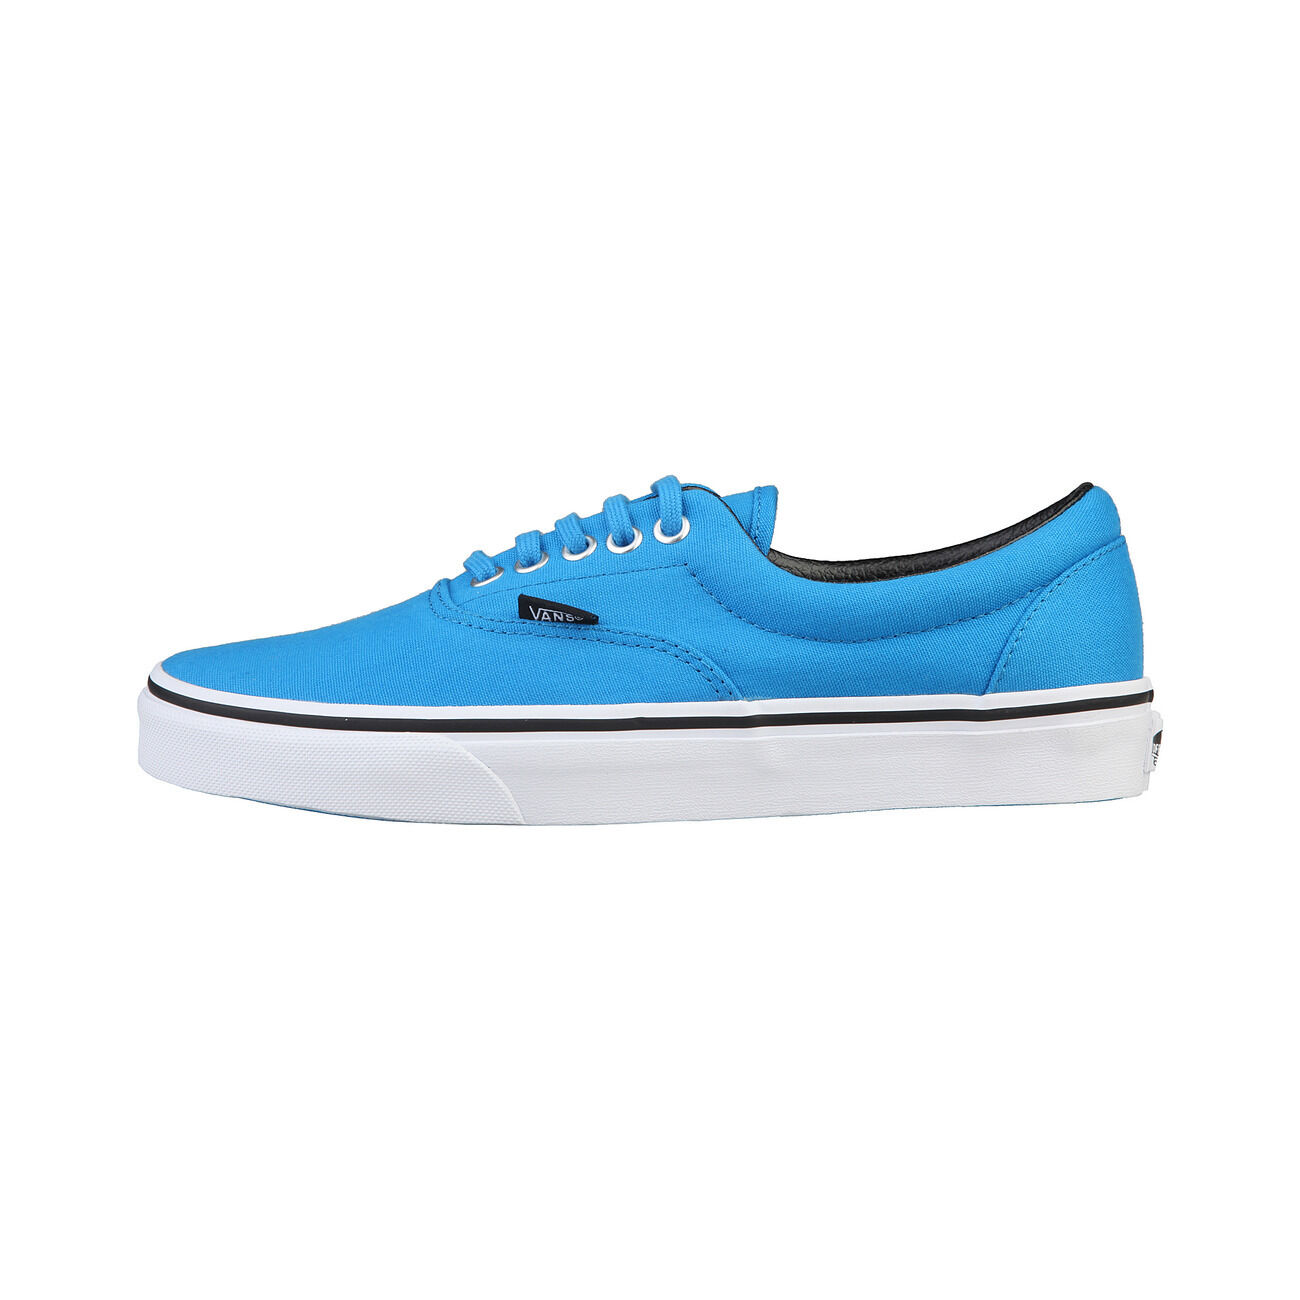 shoes Sneakers Casual Brand Vans Man Men Woman Women